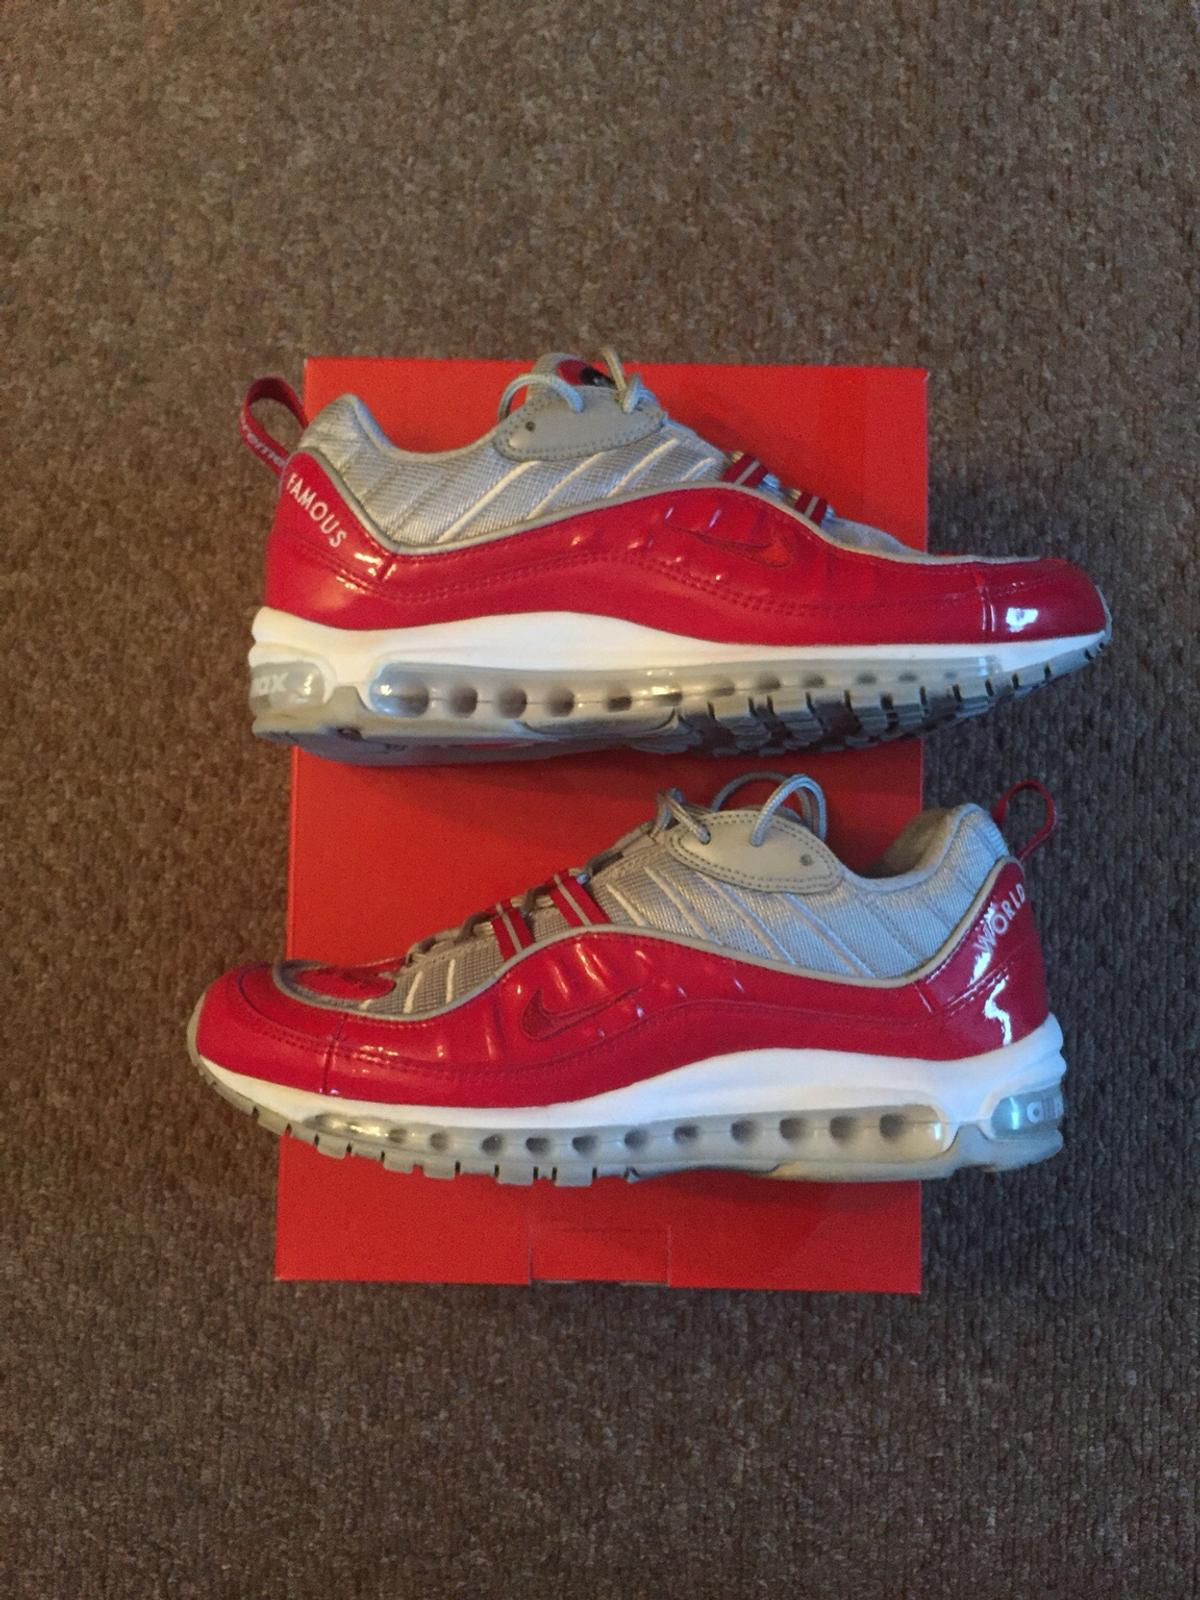 Supreme X Nike Air Max 98 Red UK 8 US 9 in SW10 London for